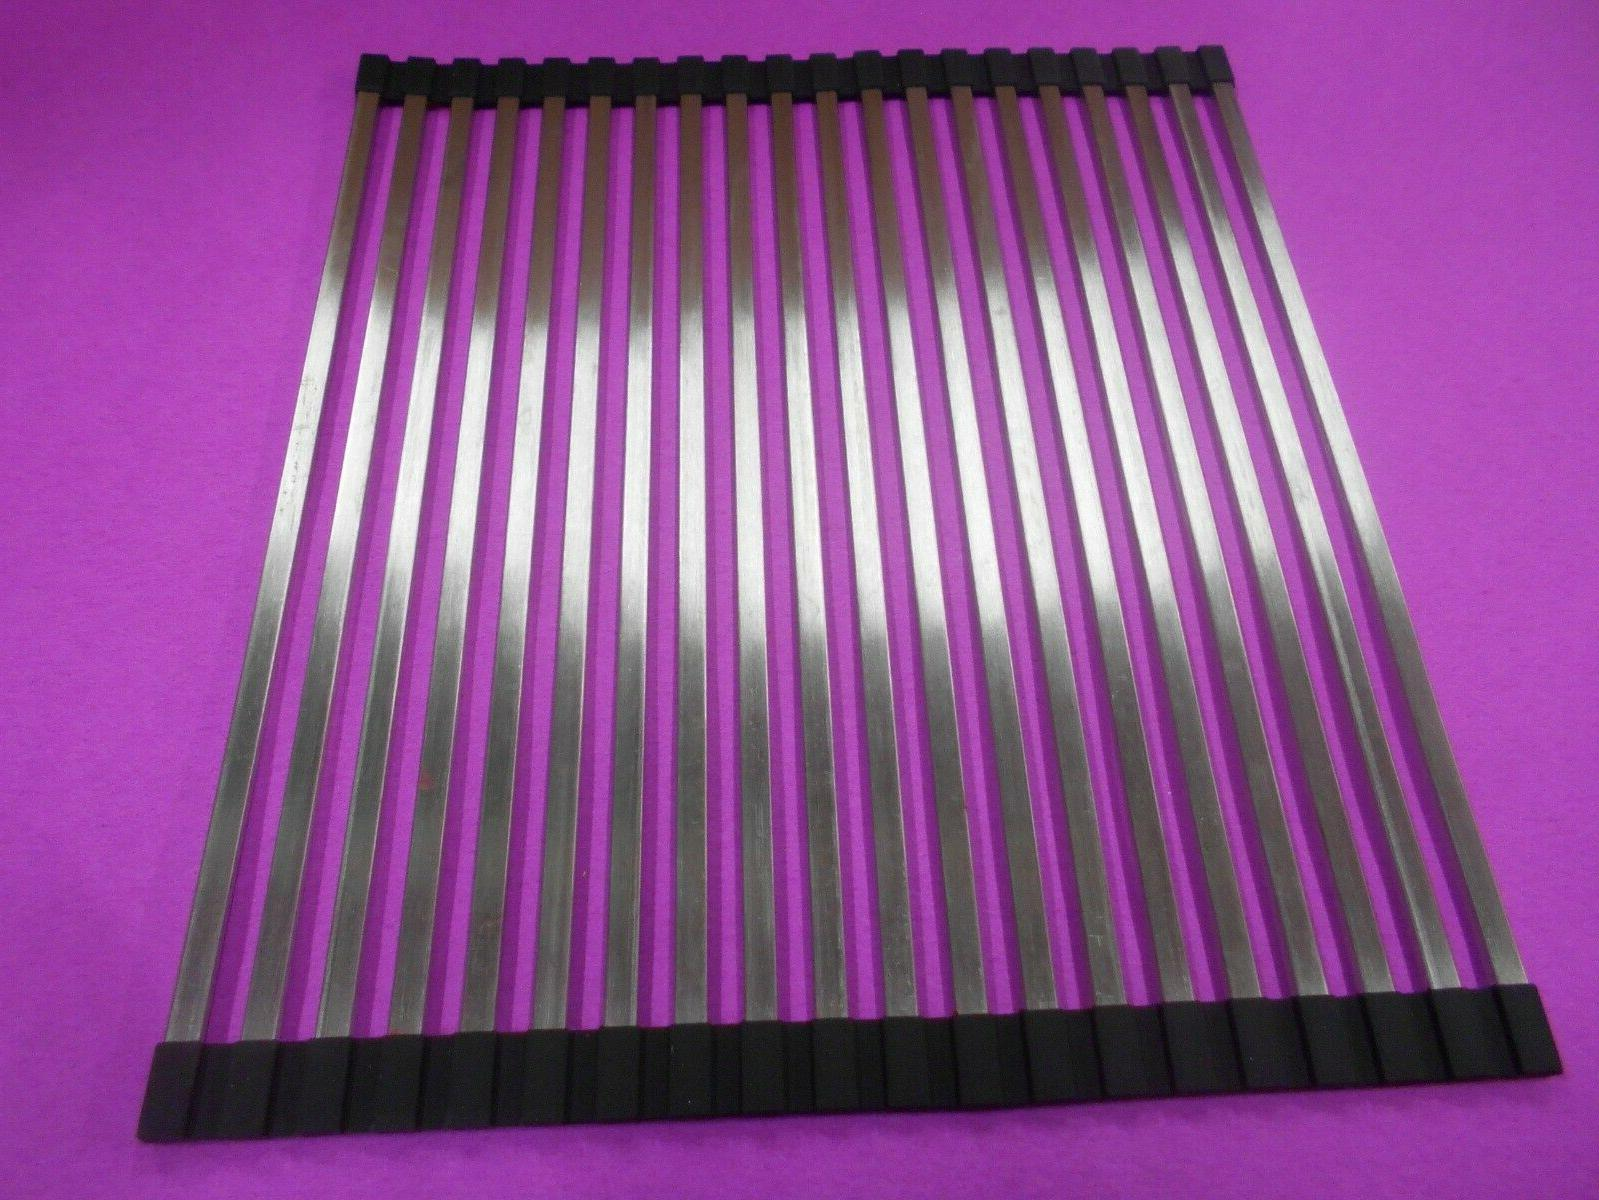 20 tube roll up sink grid cover